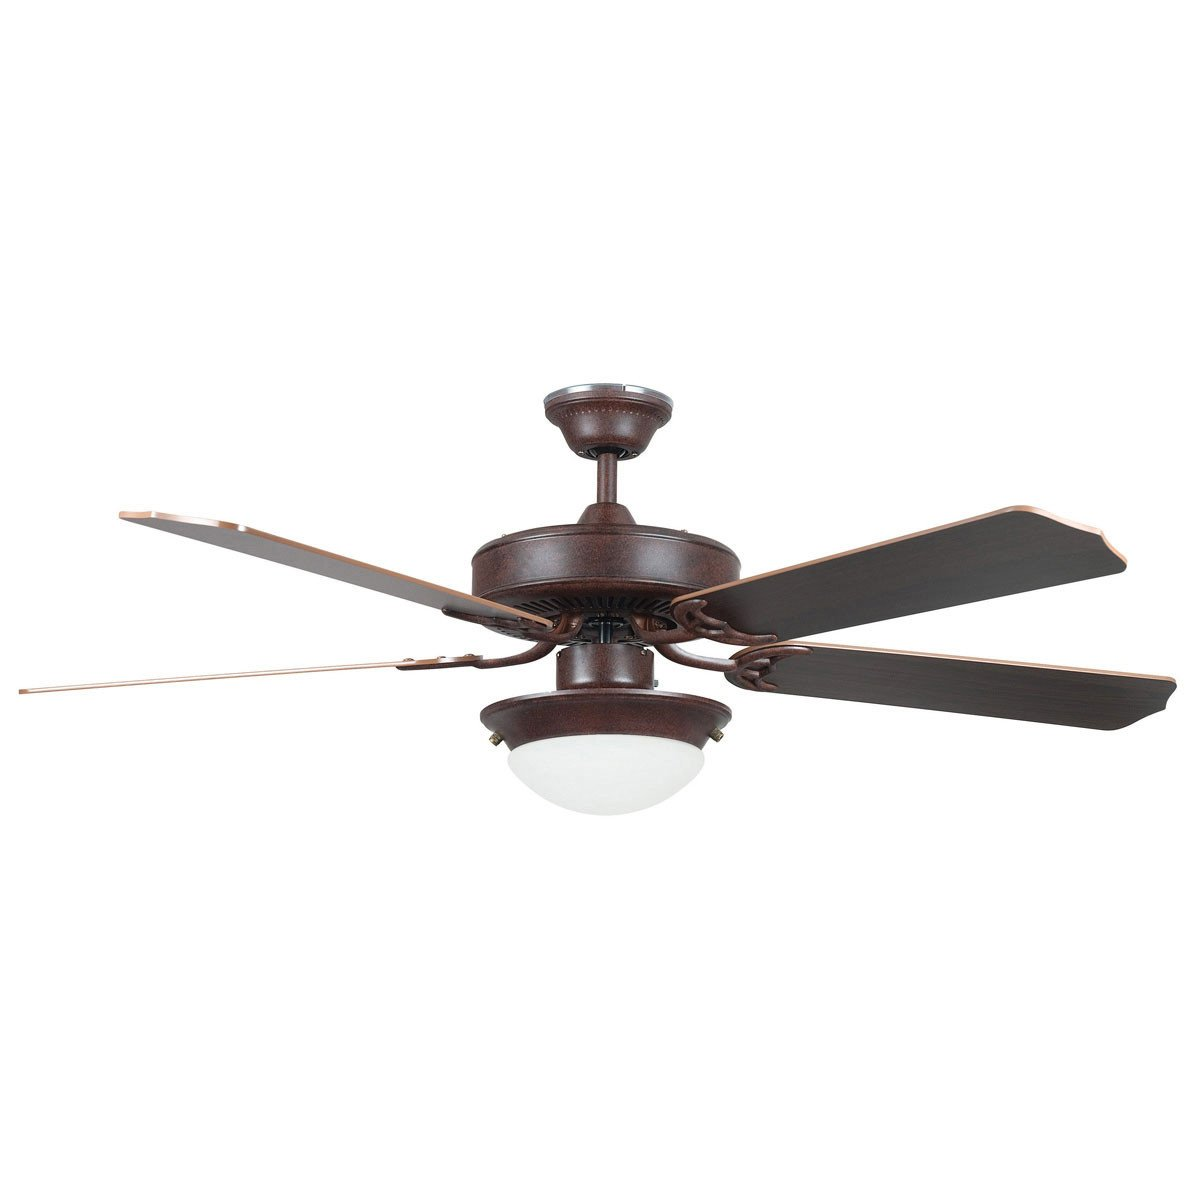 "Concord Fans 52"" Modern Energy Saver Rubbed Bronze Ceiling Fan with Light"